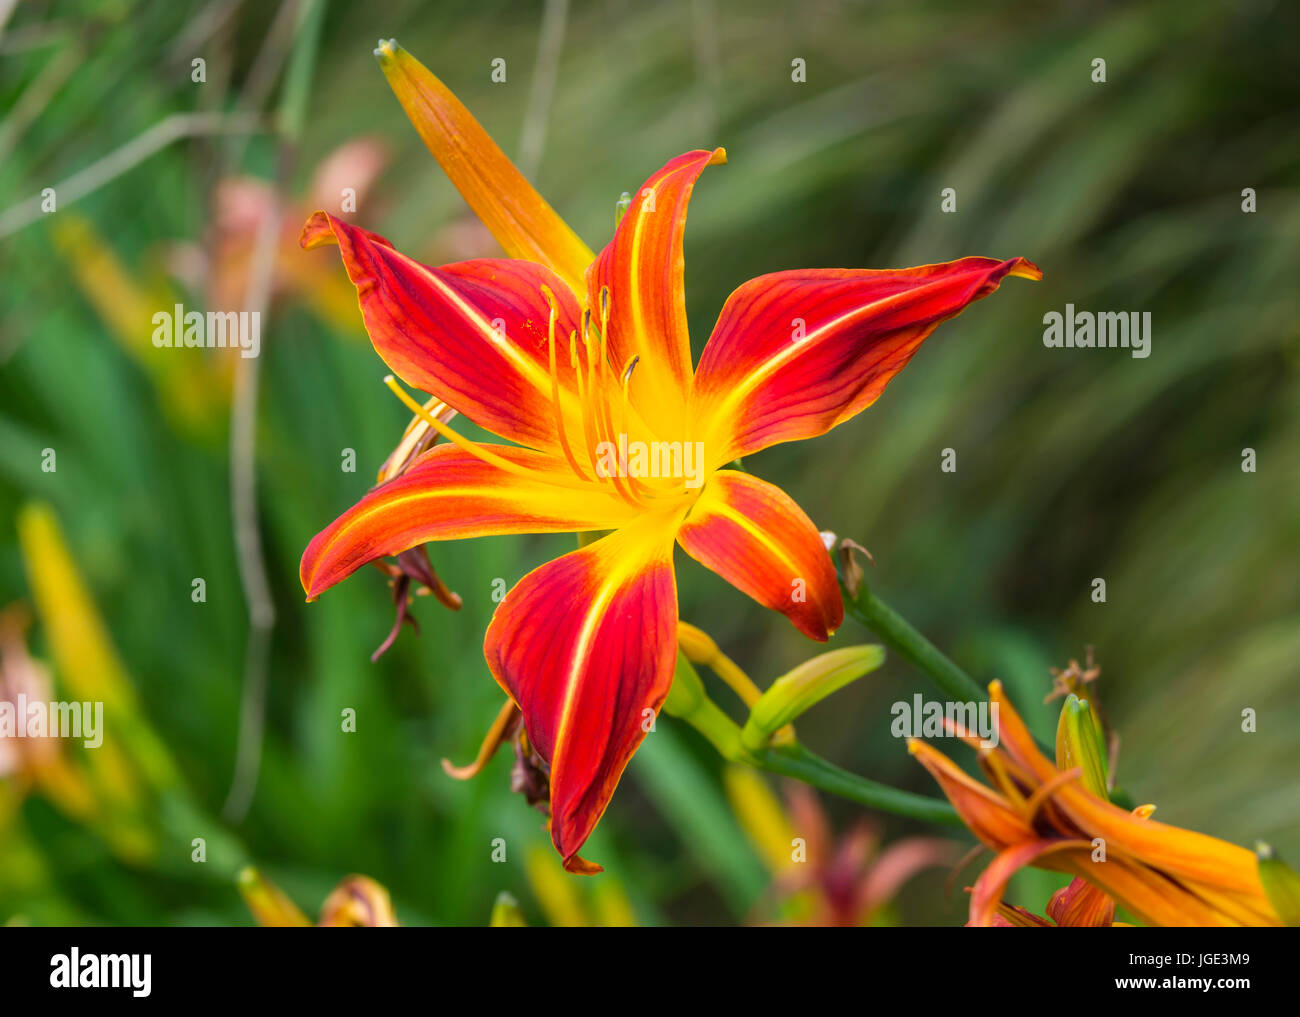 Daylily 'Red Precious' (Hemerocallis 'Red Precious') flower in Summer in West Sussex, England, UK. - Stock Image